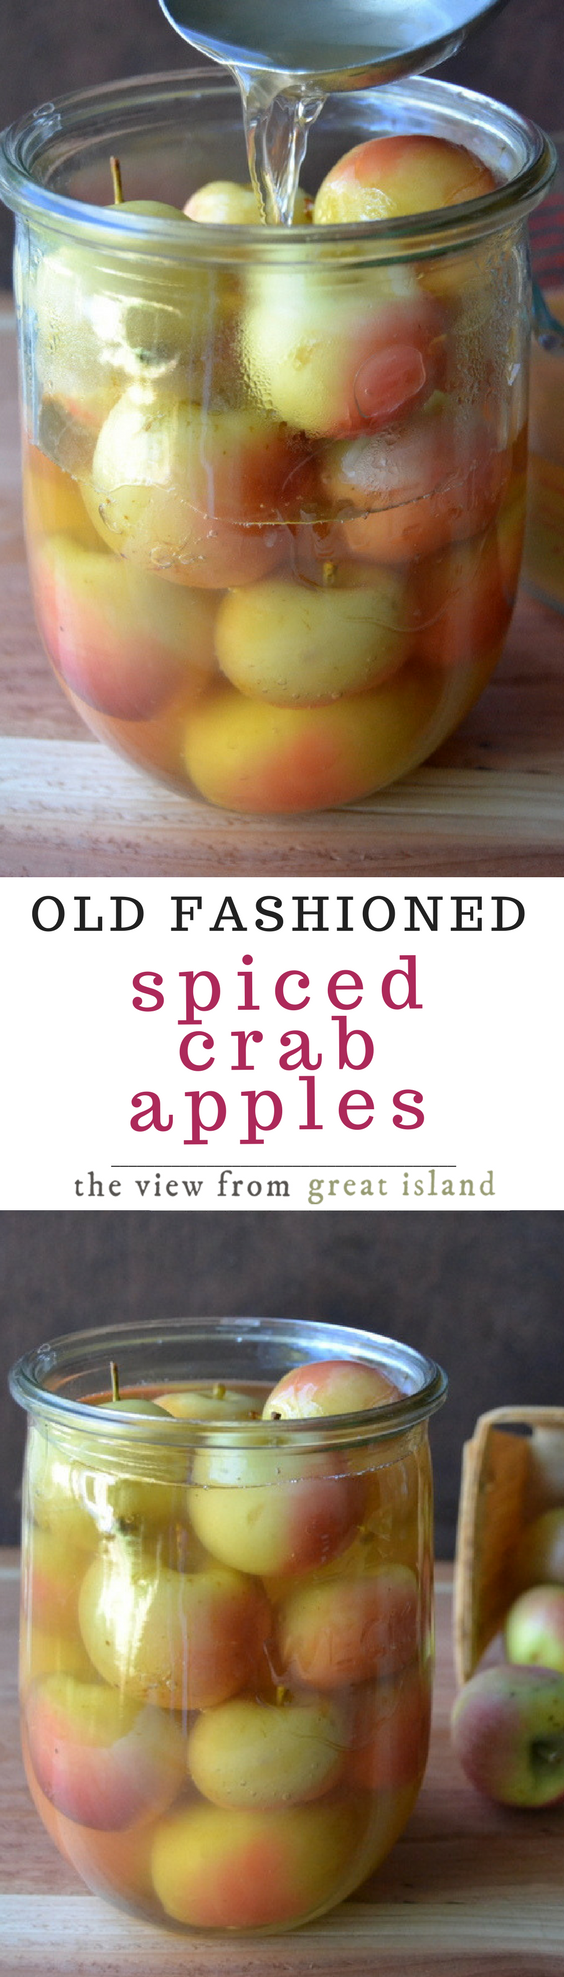 Crab Apple Recipes Australia